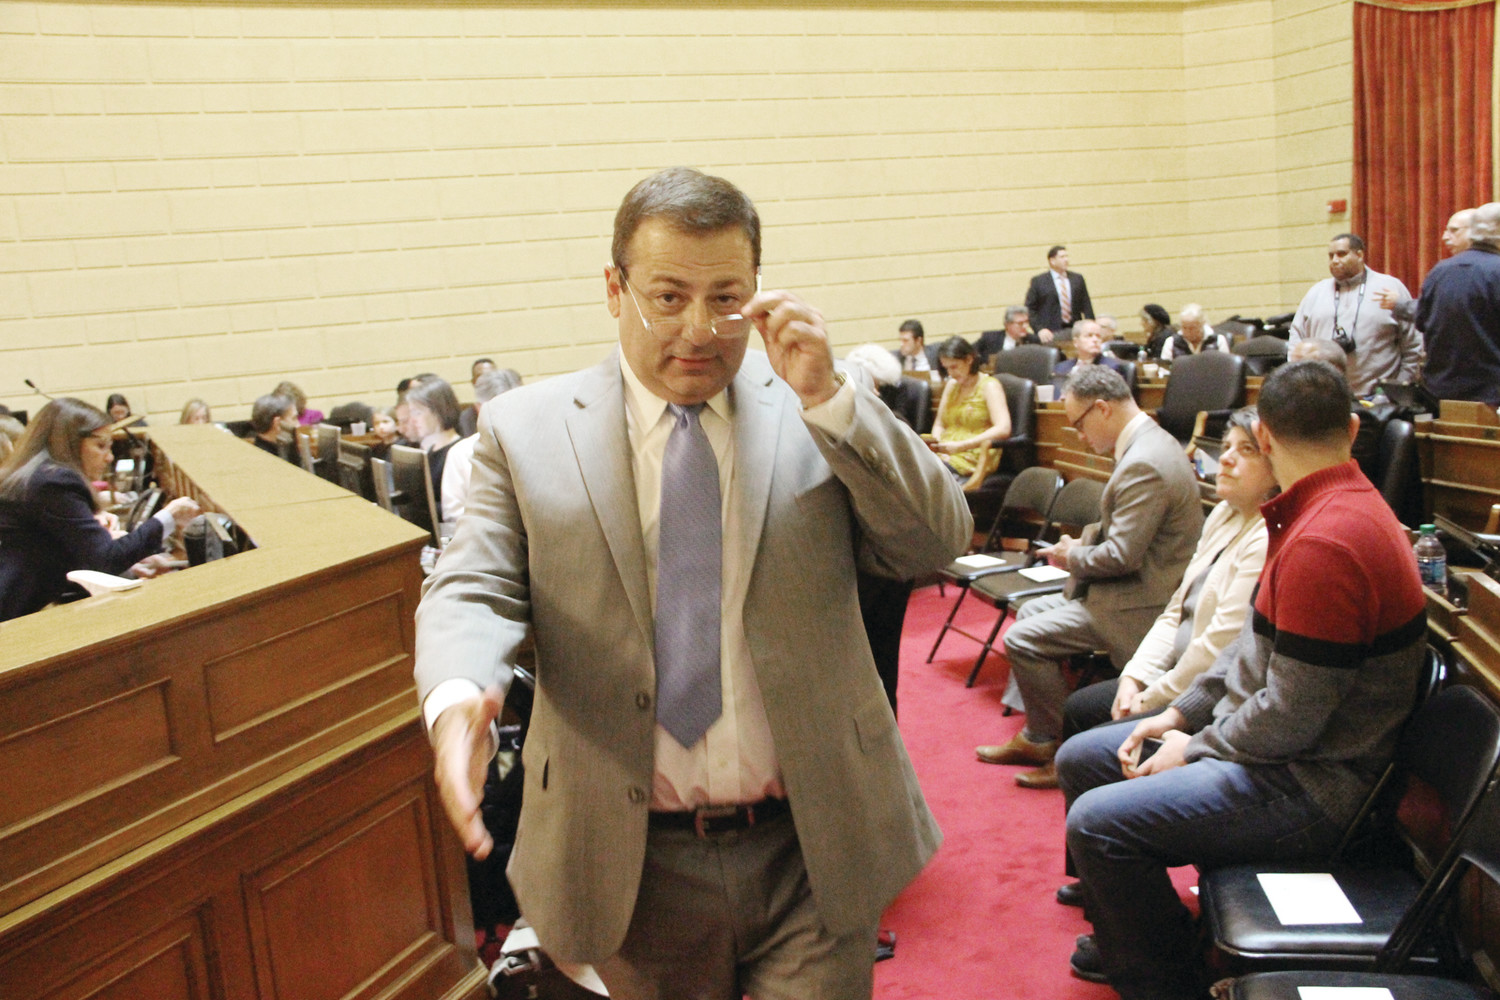 HAND OUT: House Majority Leader K. Joseph Shekarchi extends a welcoming hand as he greets visitors to the House floor Tuesday. (Warwick Beacon photos)